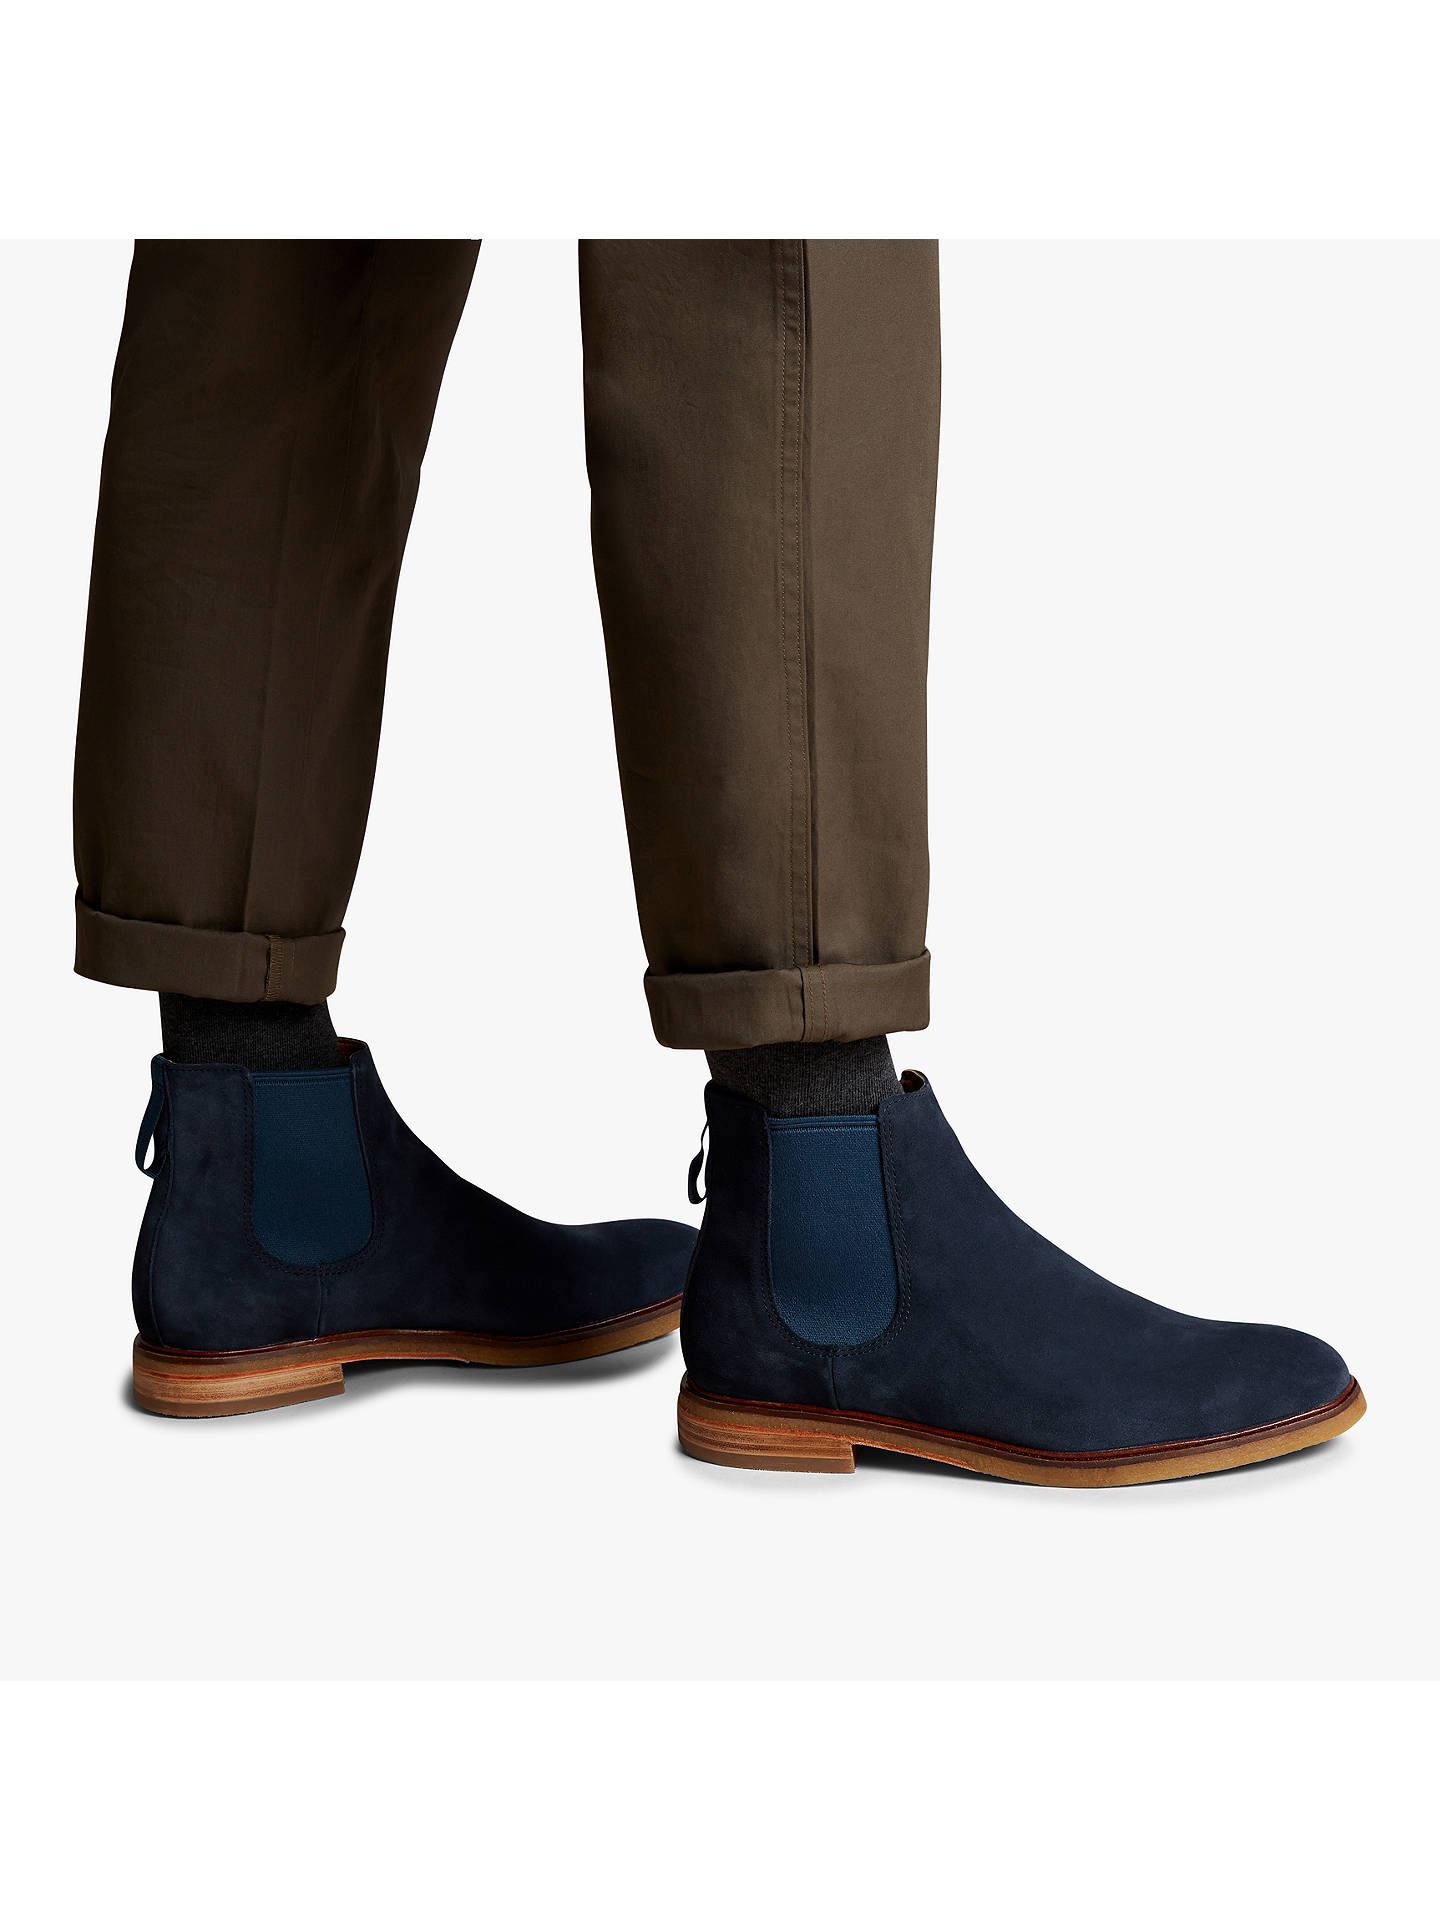 Clarks Clarkdale Gobi Suede Chelsea Boots at John Lewis